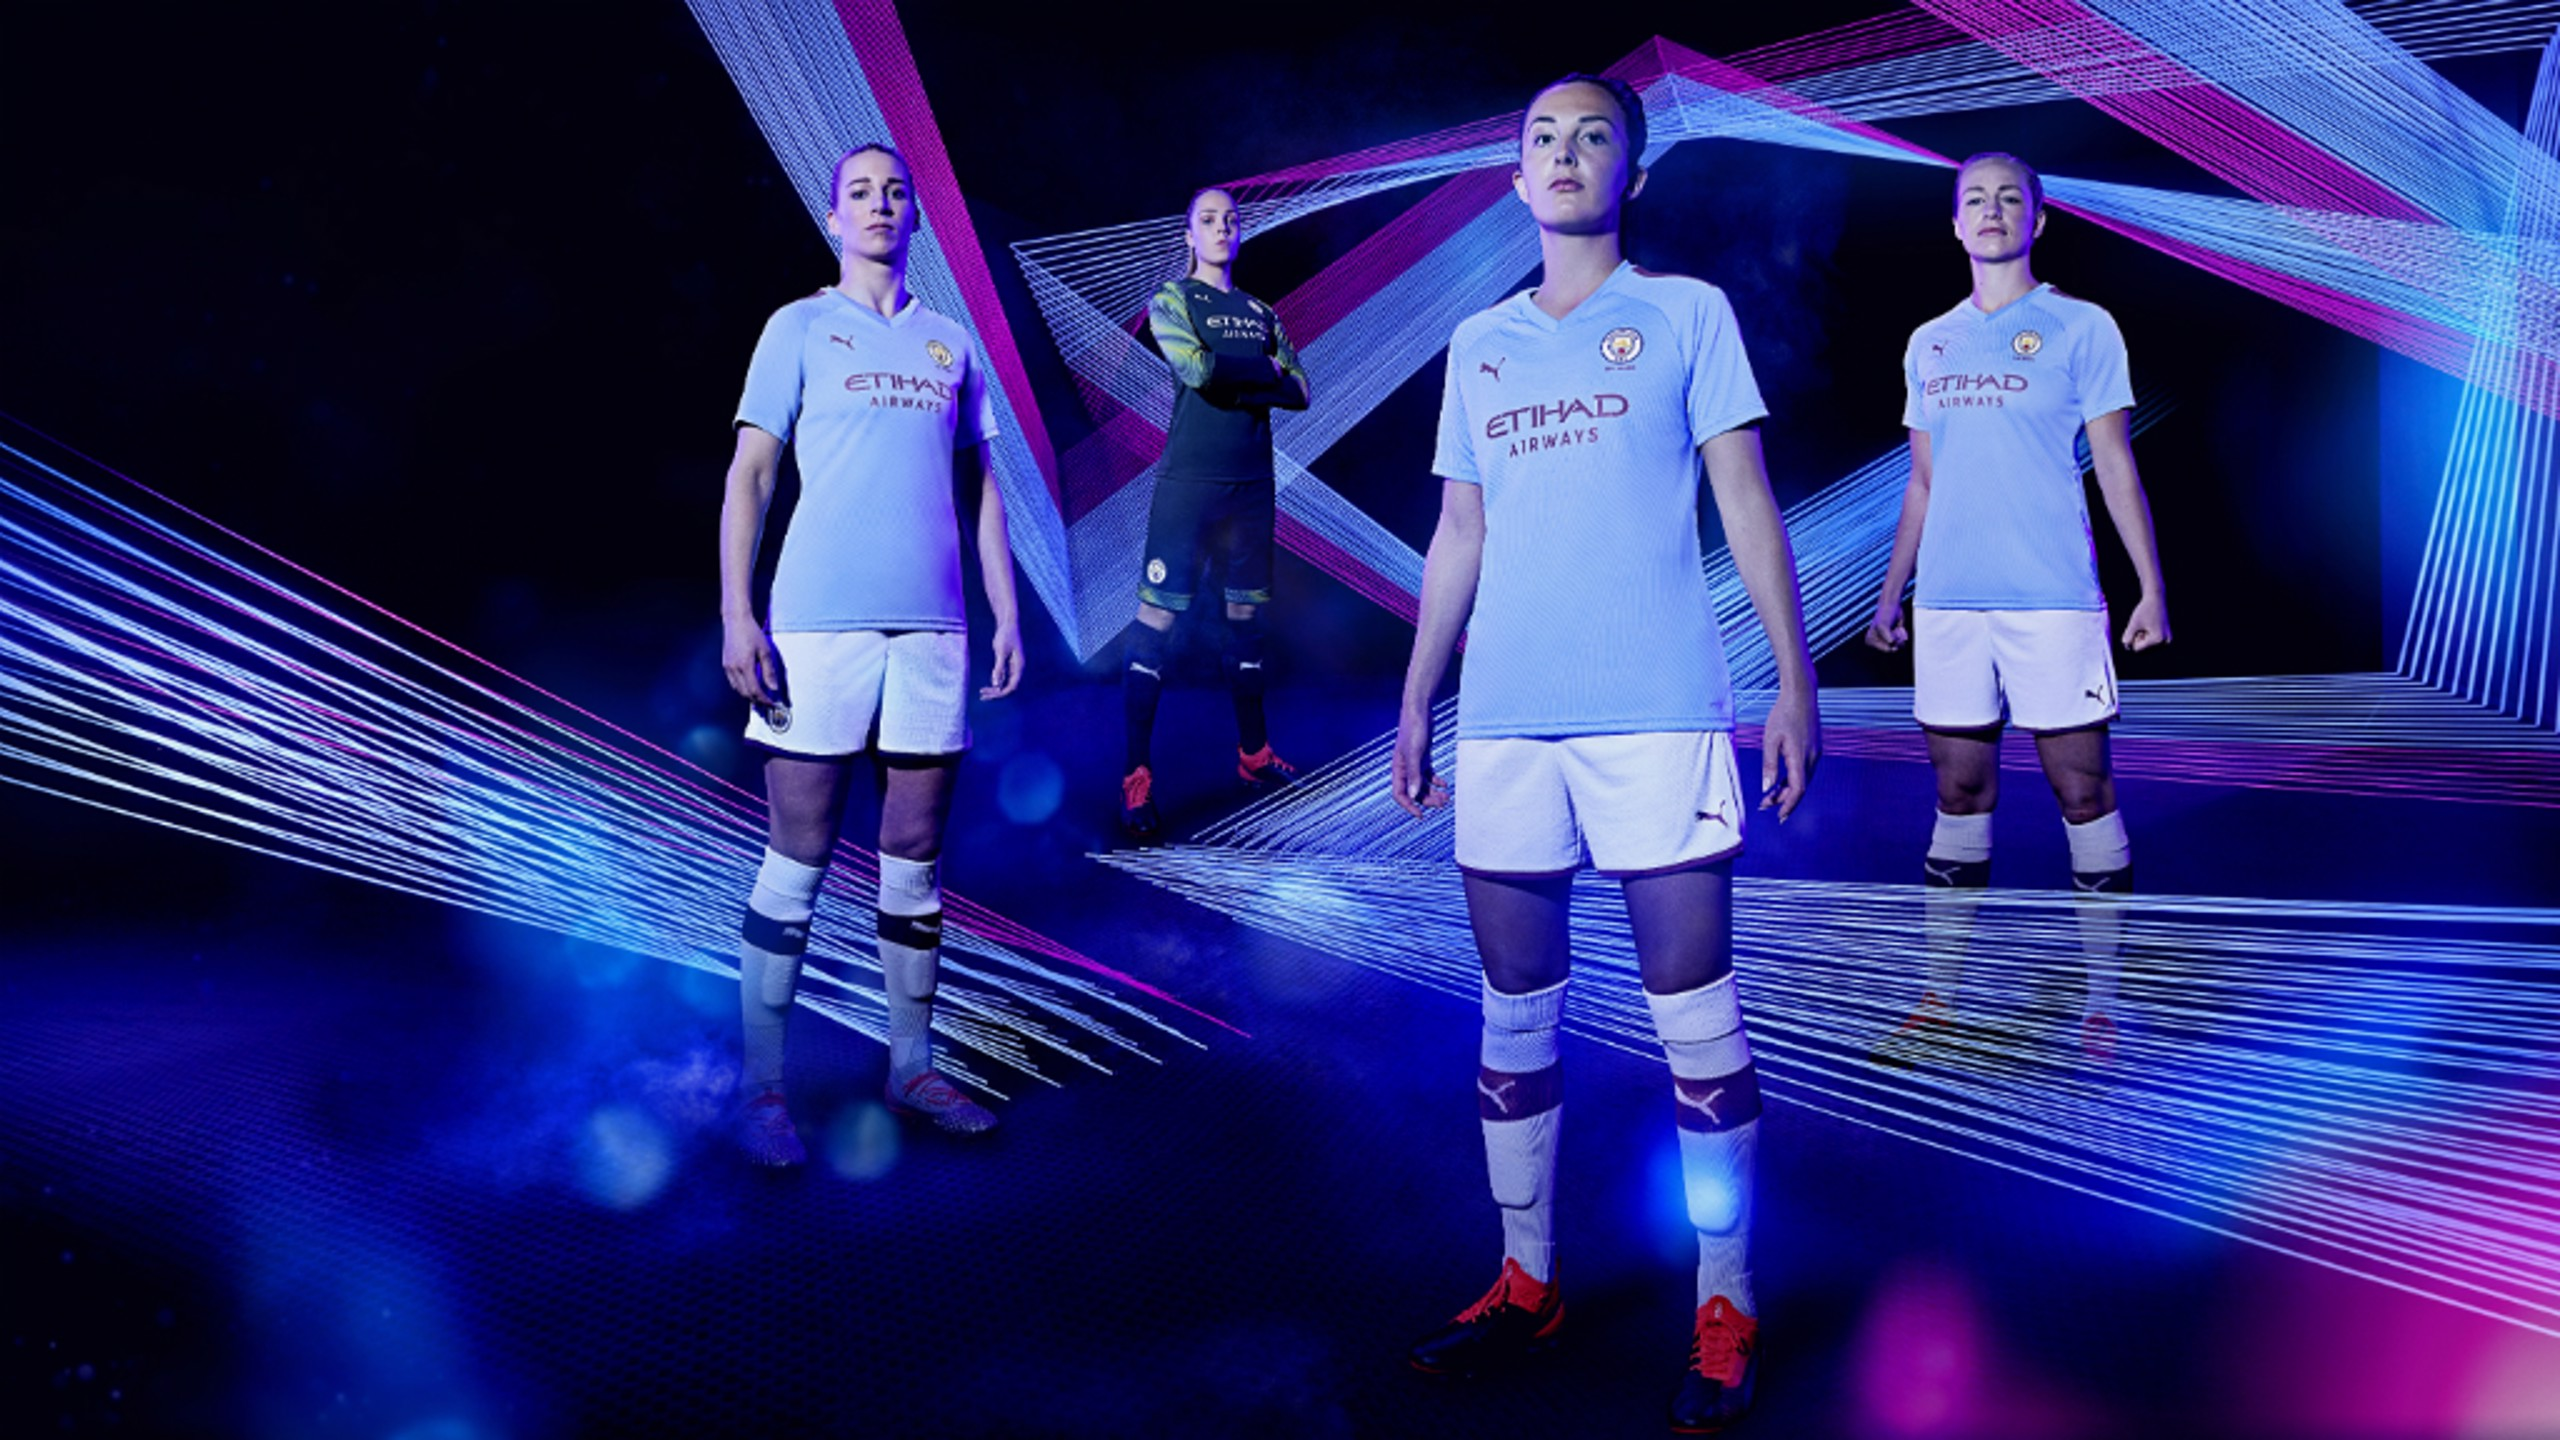 DOUBLE WINNING: City's women's team will look to mark the kits' debut campaign with more silverware, having secured the FA Cup and Continental Cup last season.